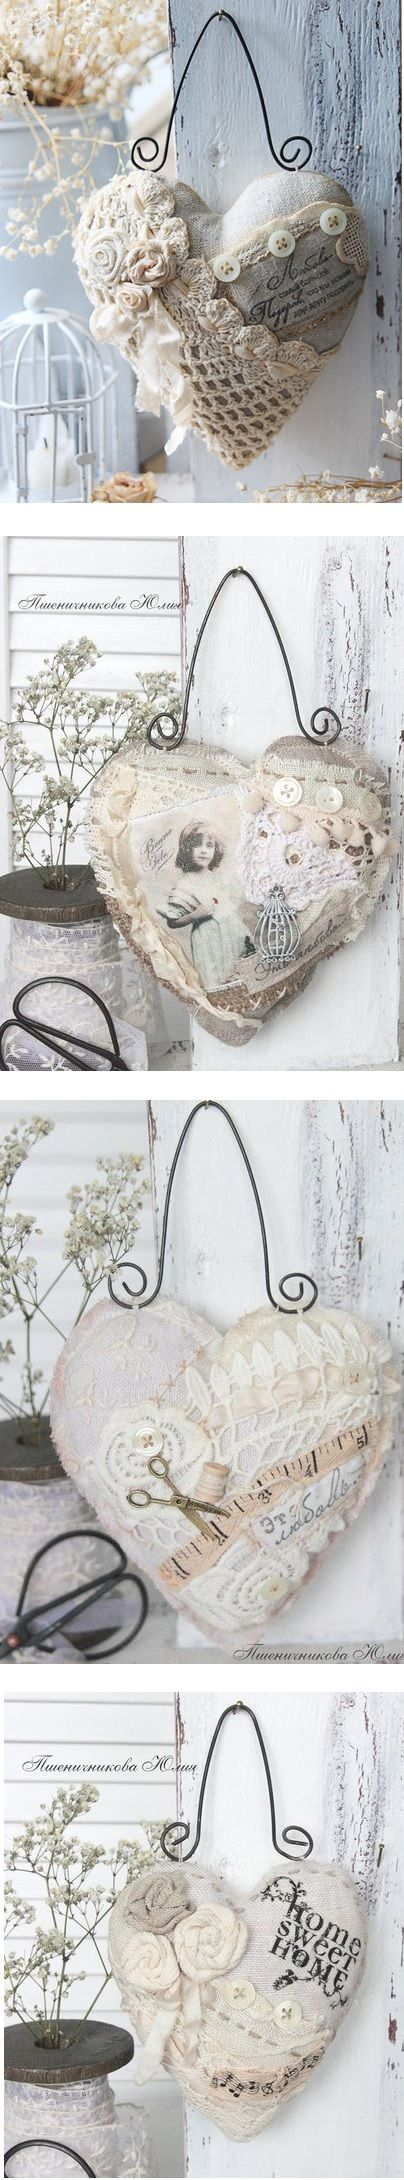 Love these ideas for heart pincushions, potpourri sachets or hanging ornaments! :)